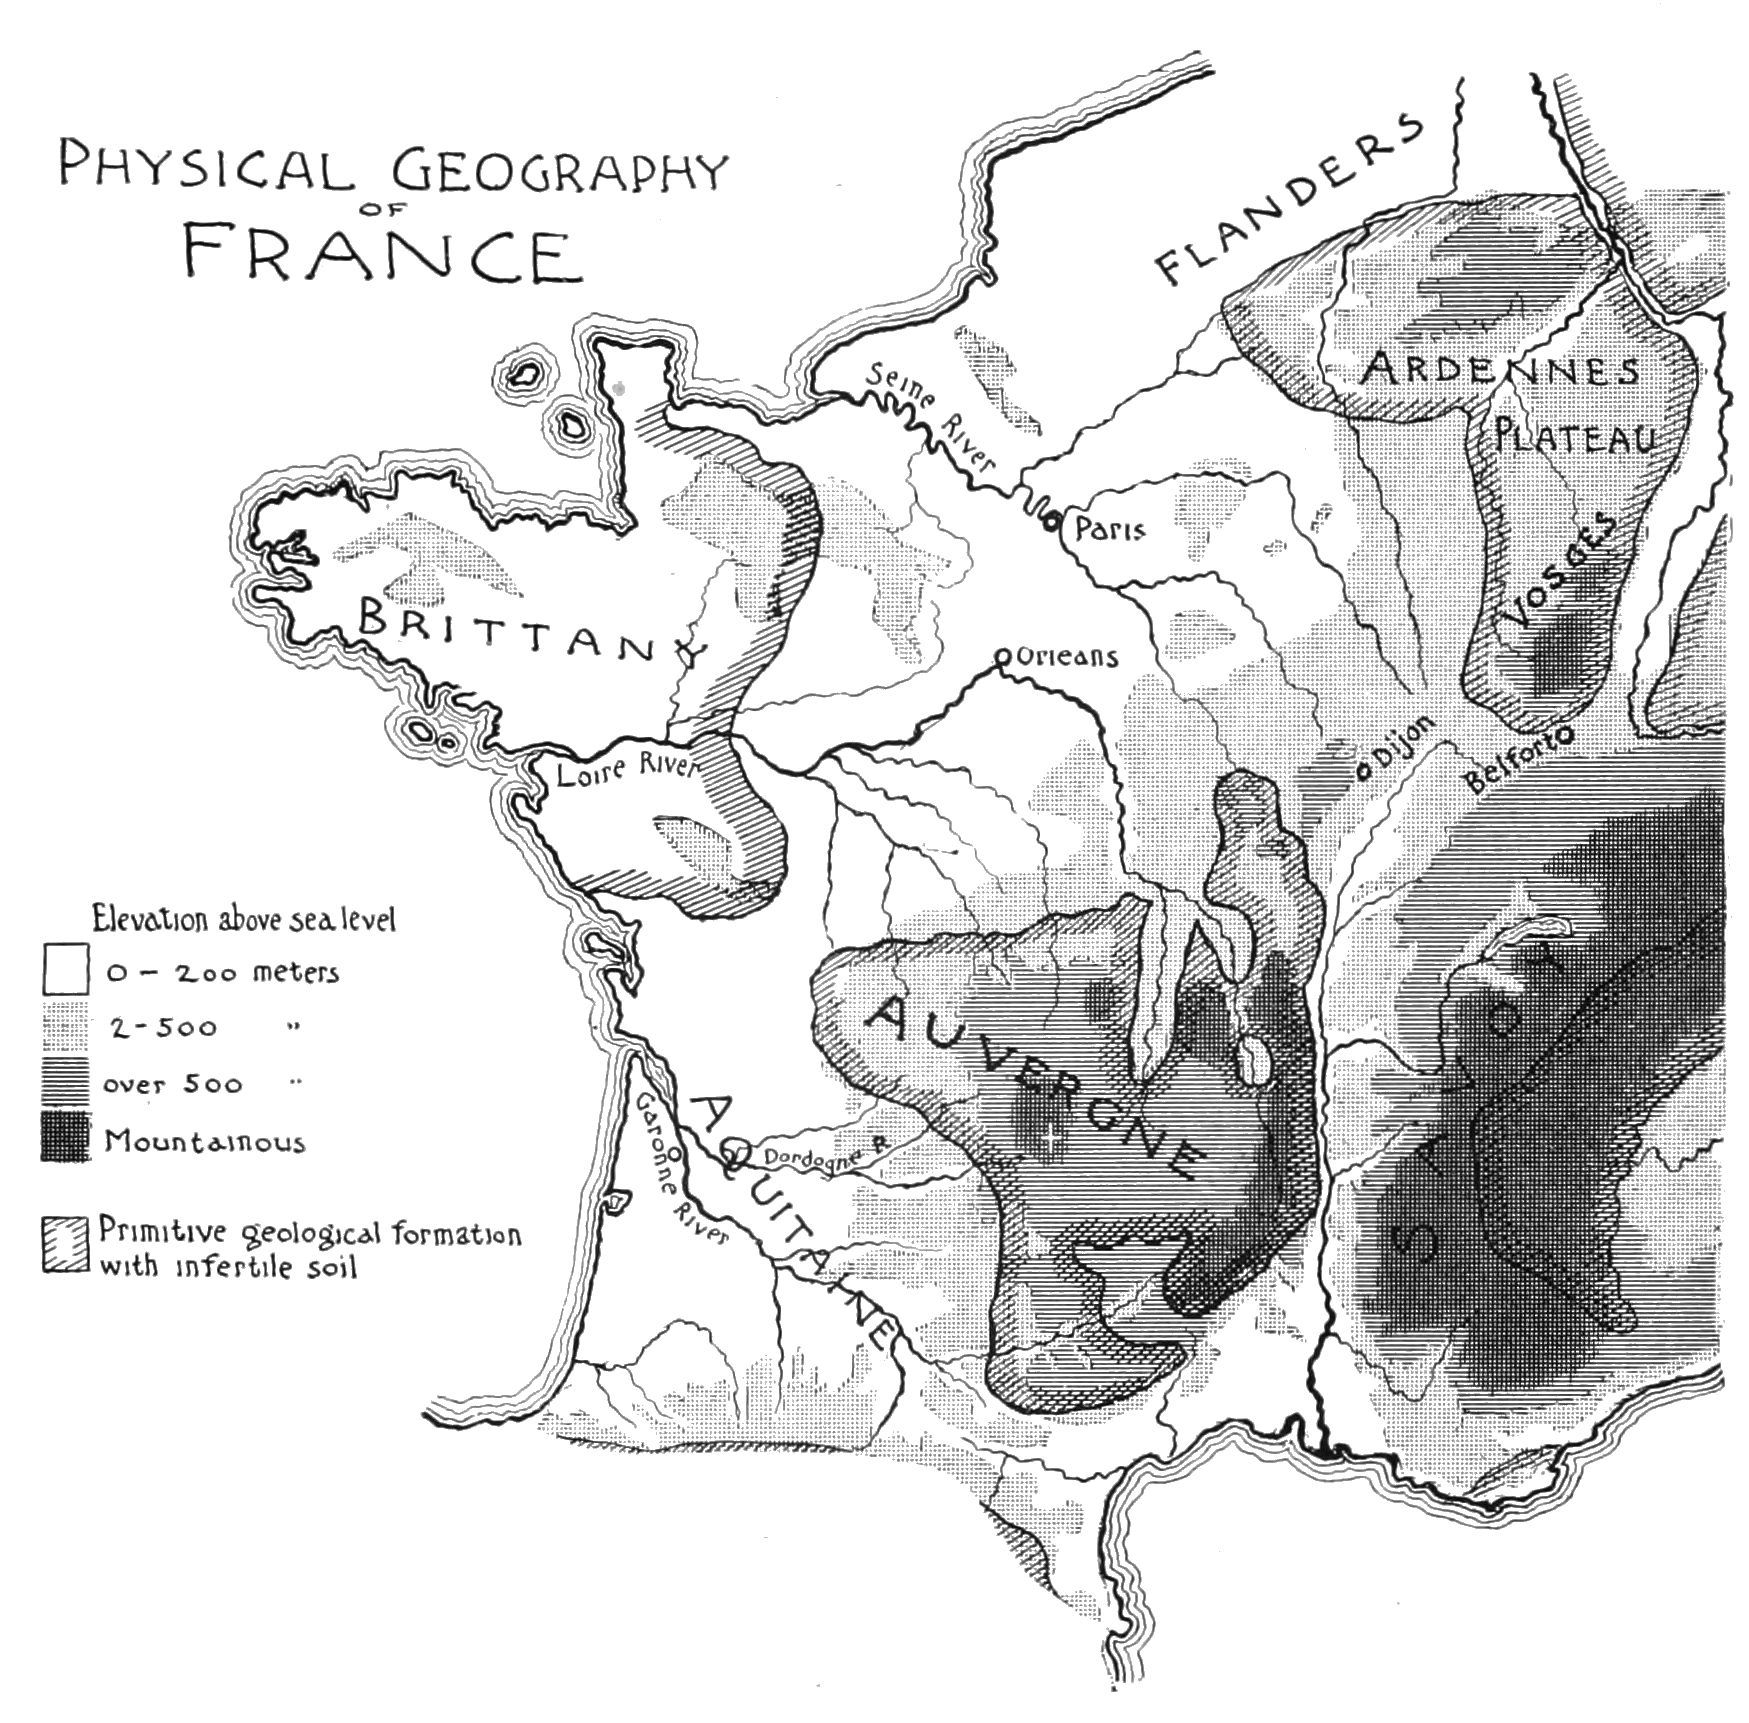 PSM V51 D446 Physical geography of france.jpg